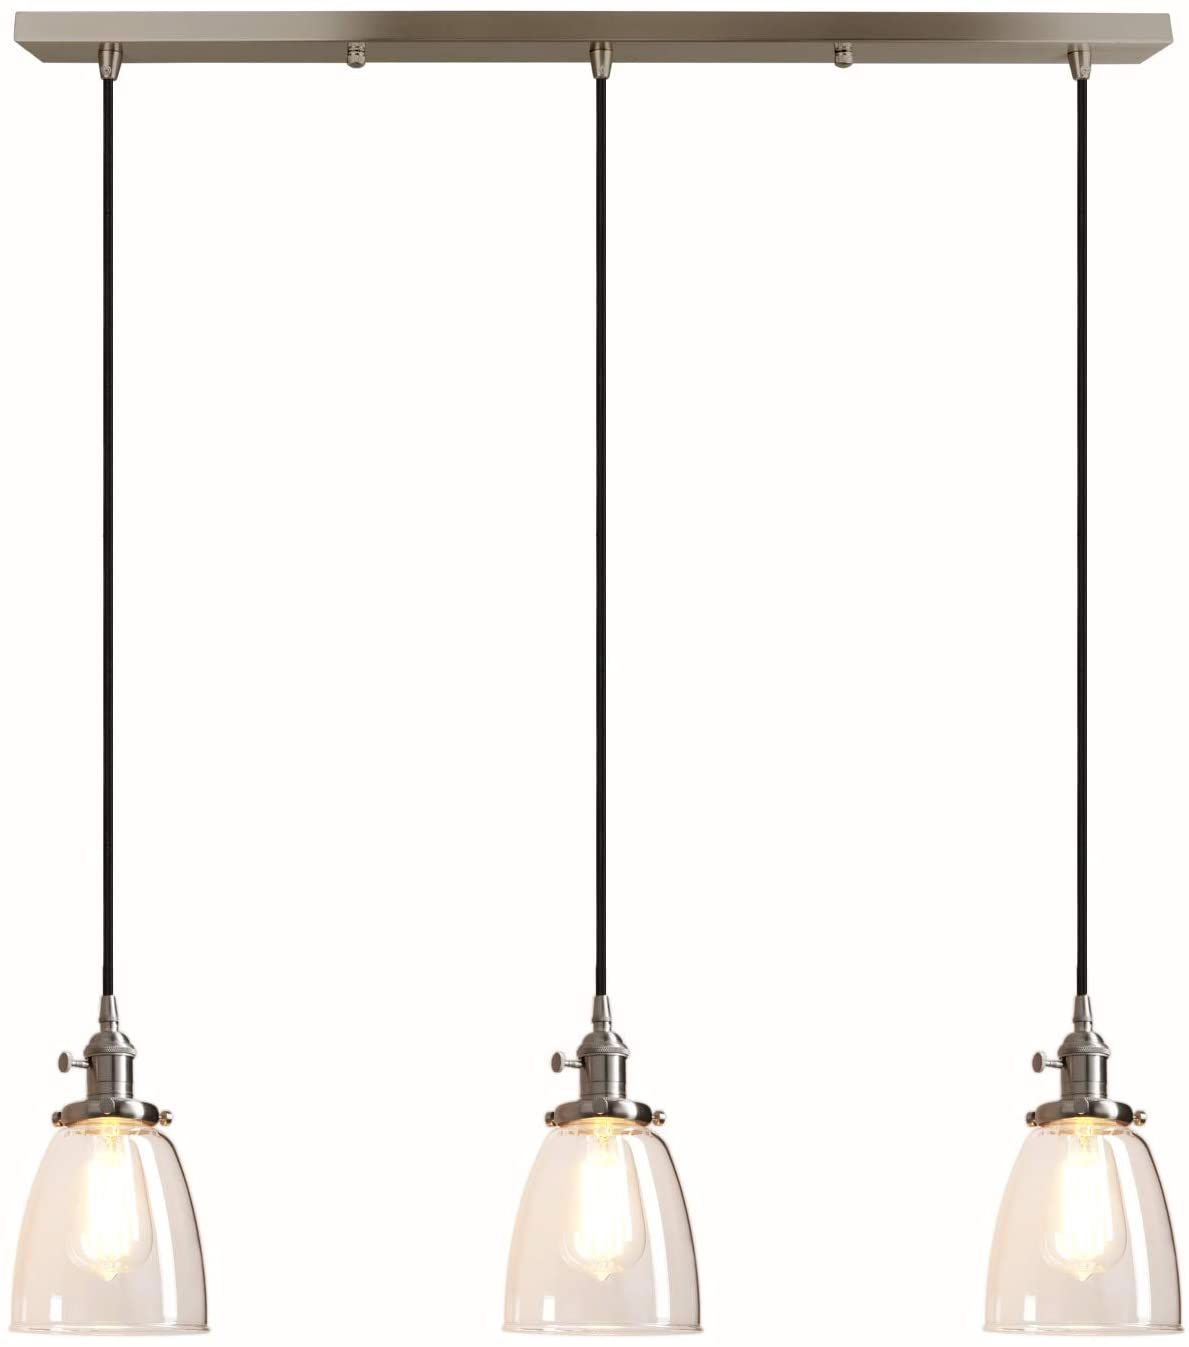 Pathson Industrial 3 Light Pendant Lighting Kitchen Island Hanging Lamps With Oval Clear G Clear Glass Pendant Light Pendant Light Fixtures Glass Pendant Light